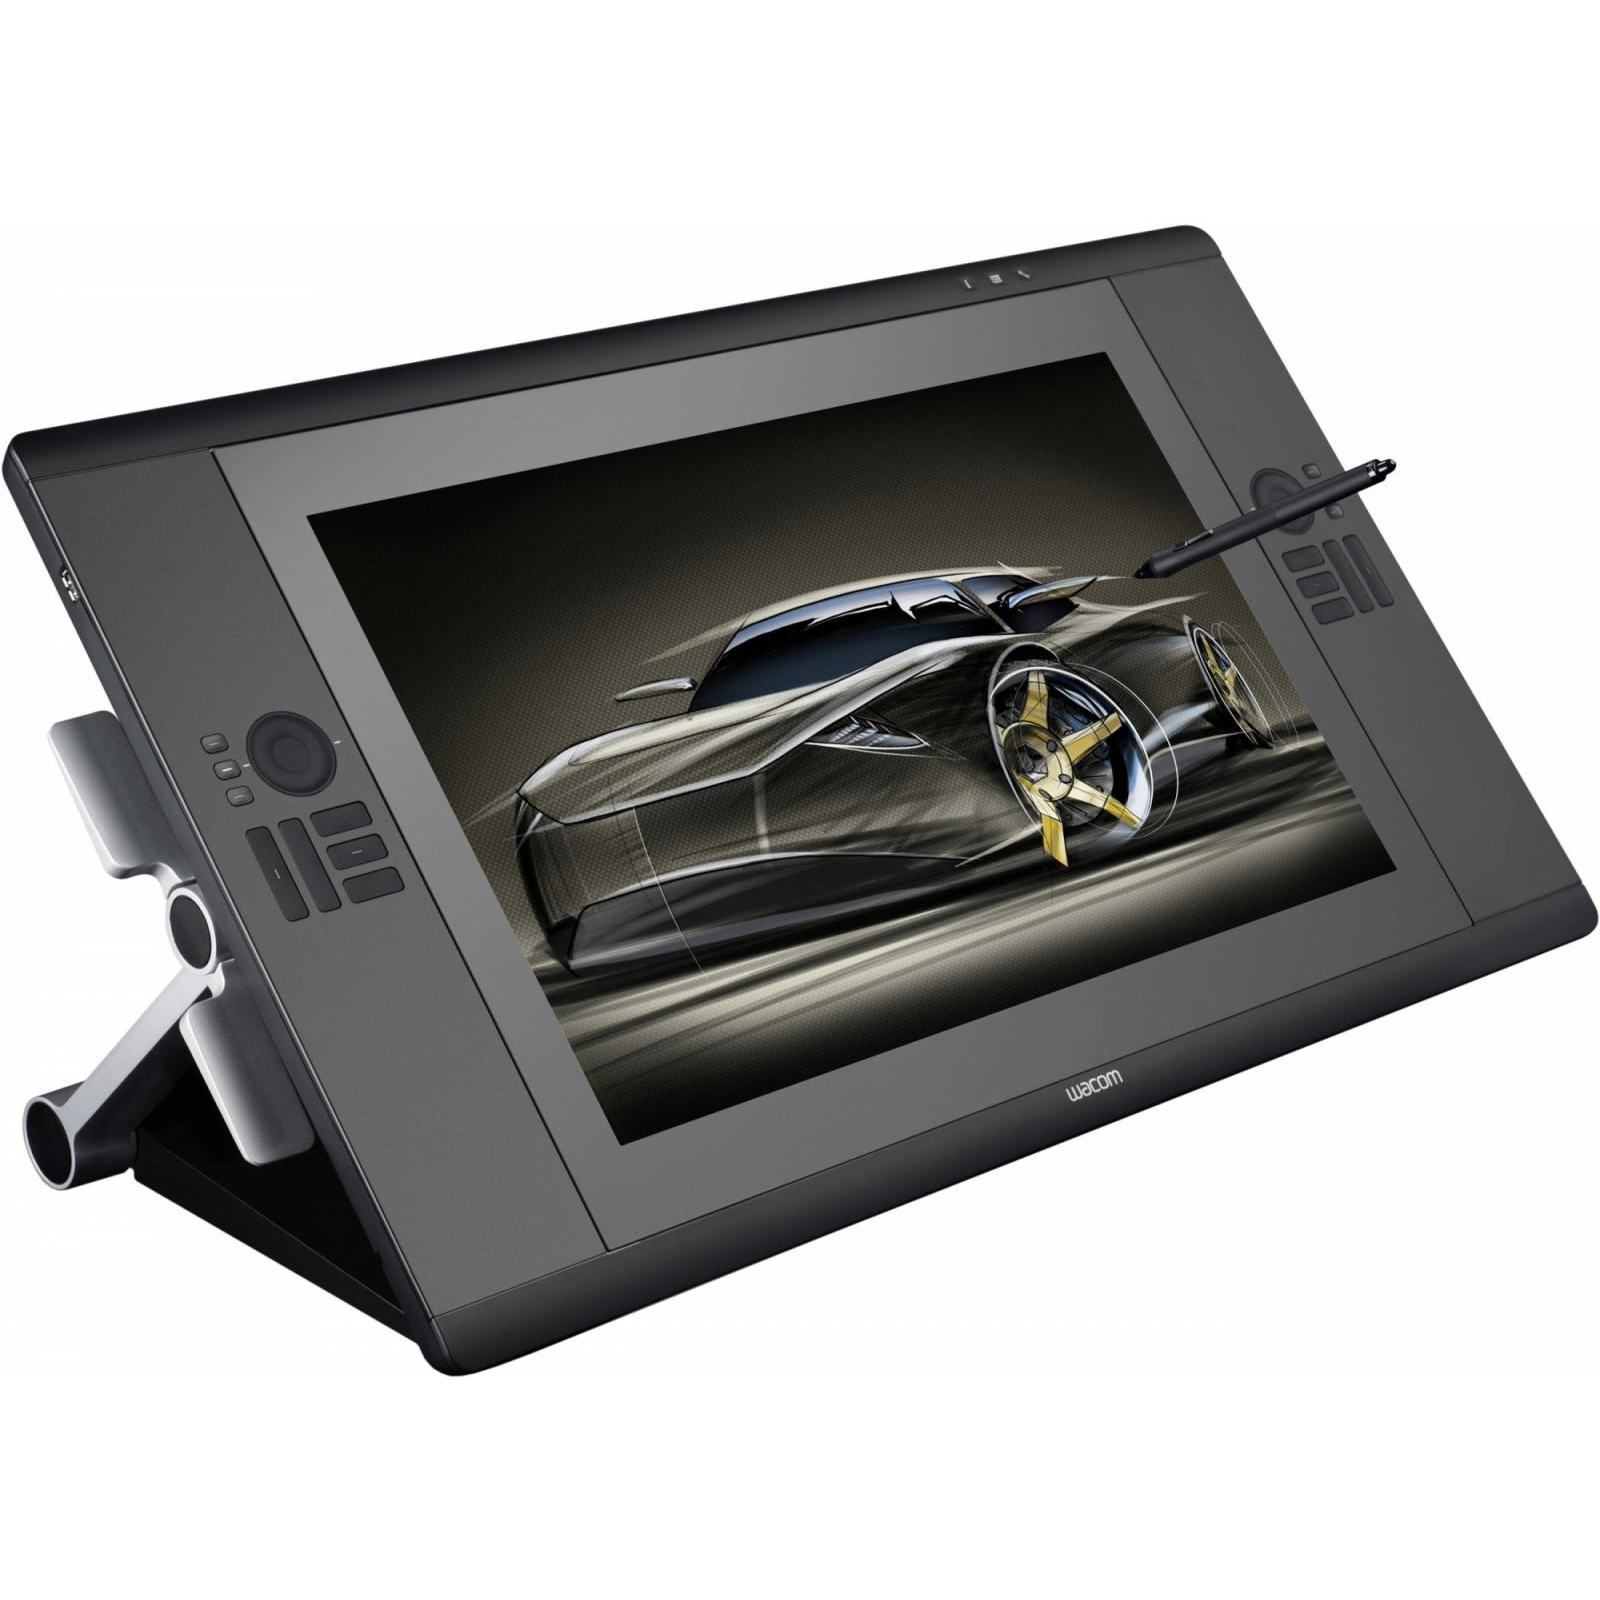 WACOM CINTIQ 24HD DRIVER FOR WINDOWS